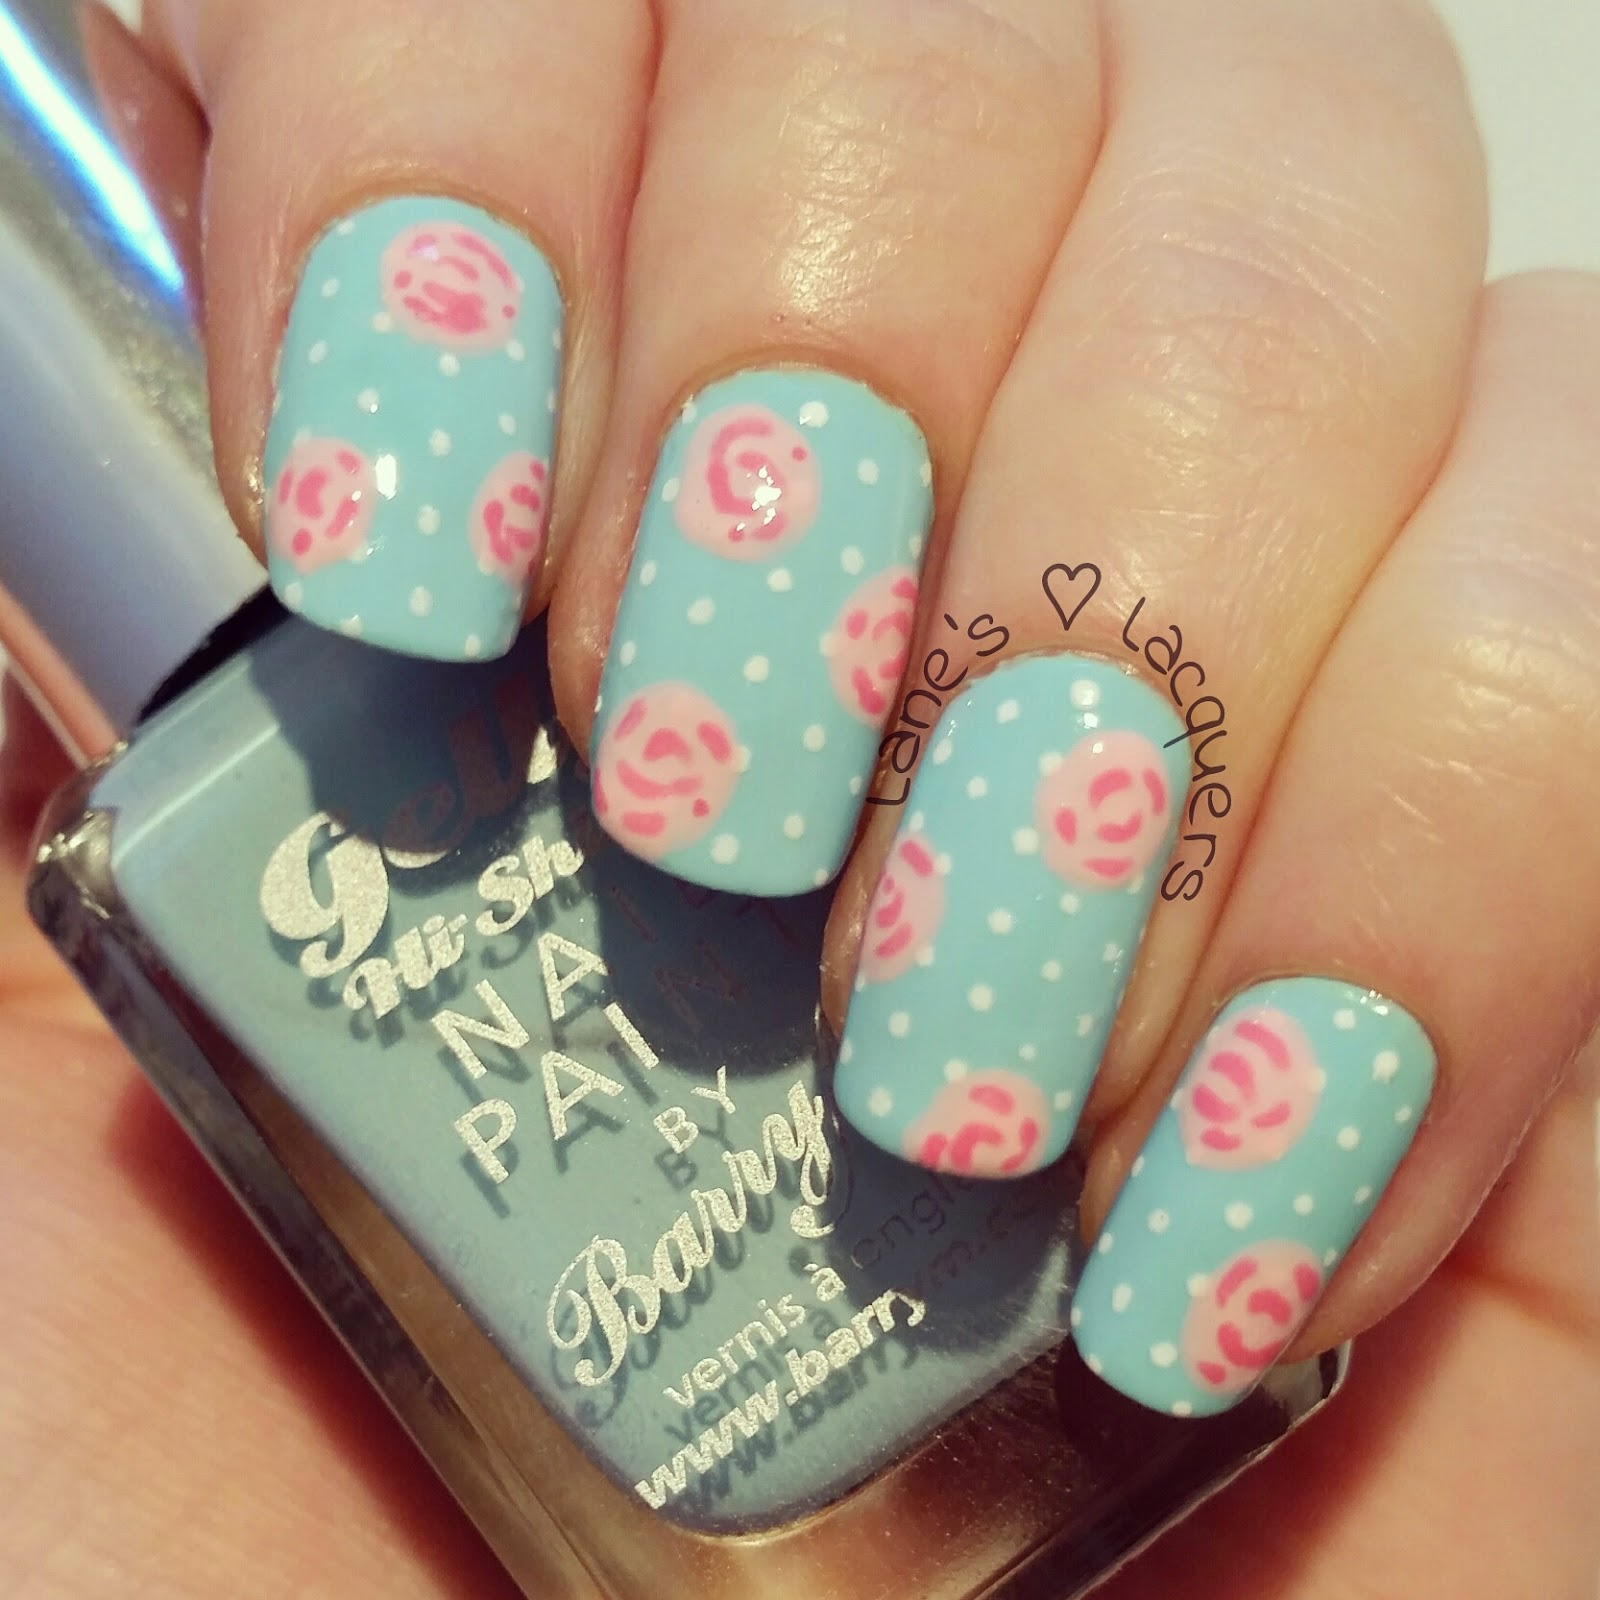 mani-swap-my-mint-nails-barry-m-spring-cath-kidston-roses-polka-dot-nail-art